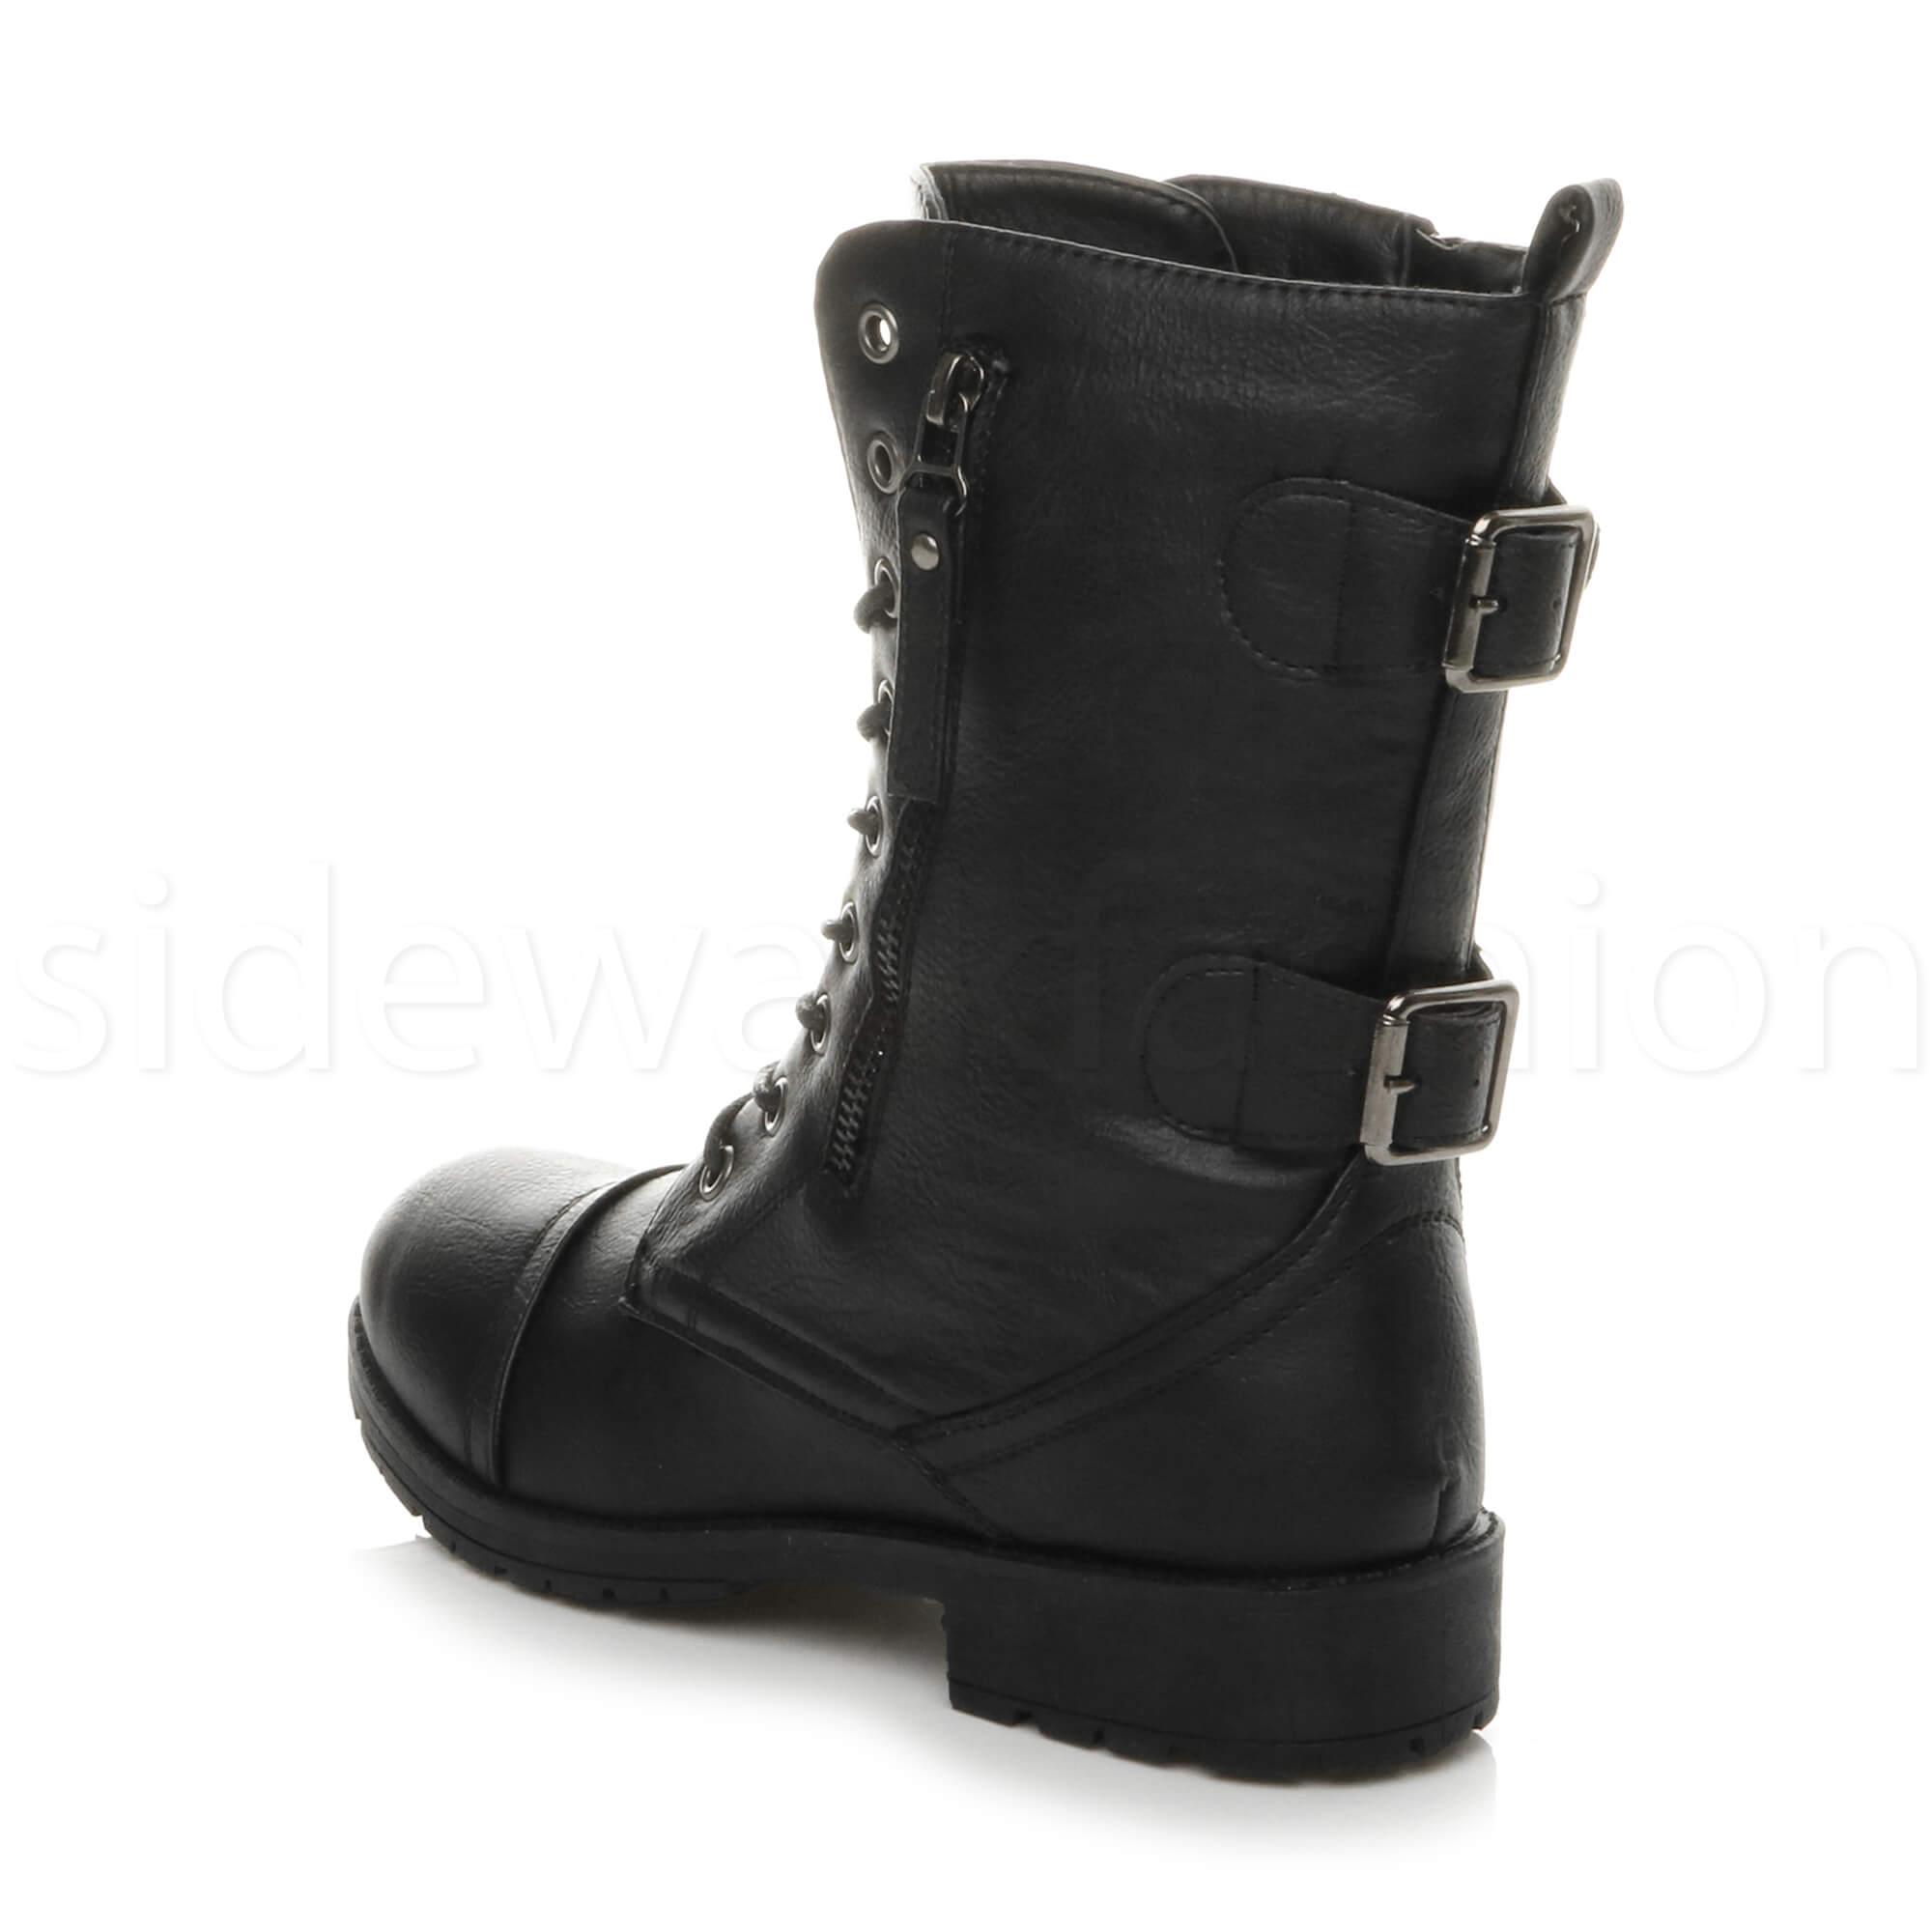 Womens-ladies-low-heel-flat-lace-up-zip-combat-biker-military-ankle-boots-size thumbnail 5